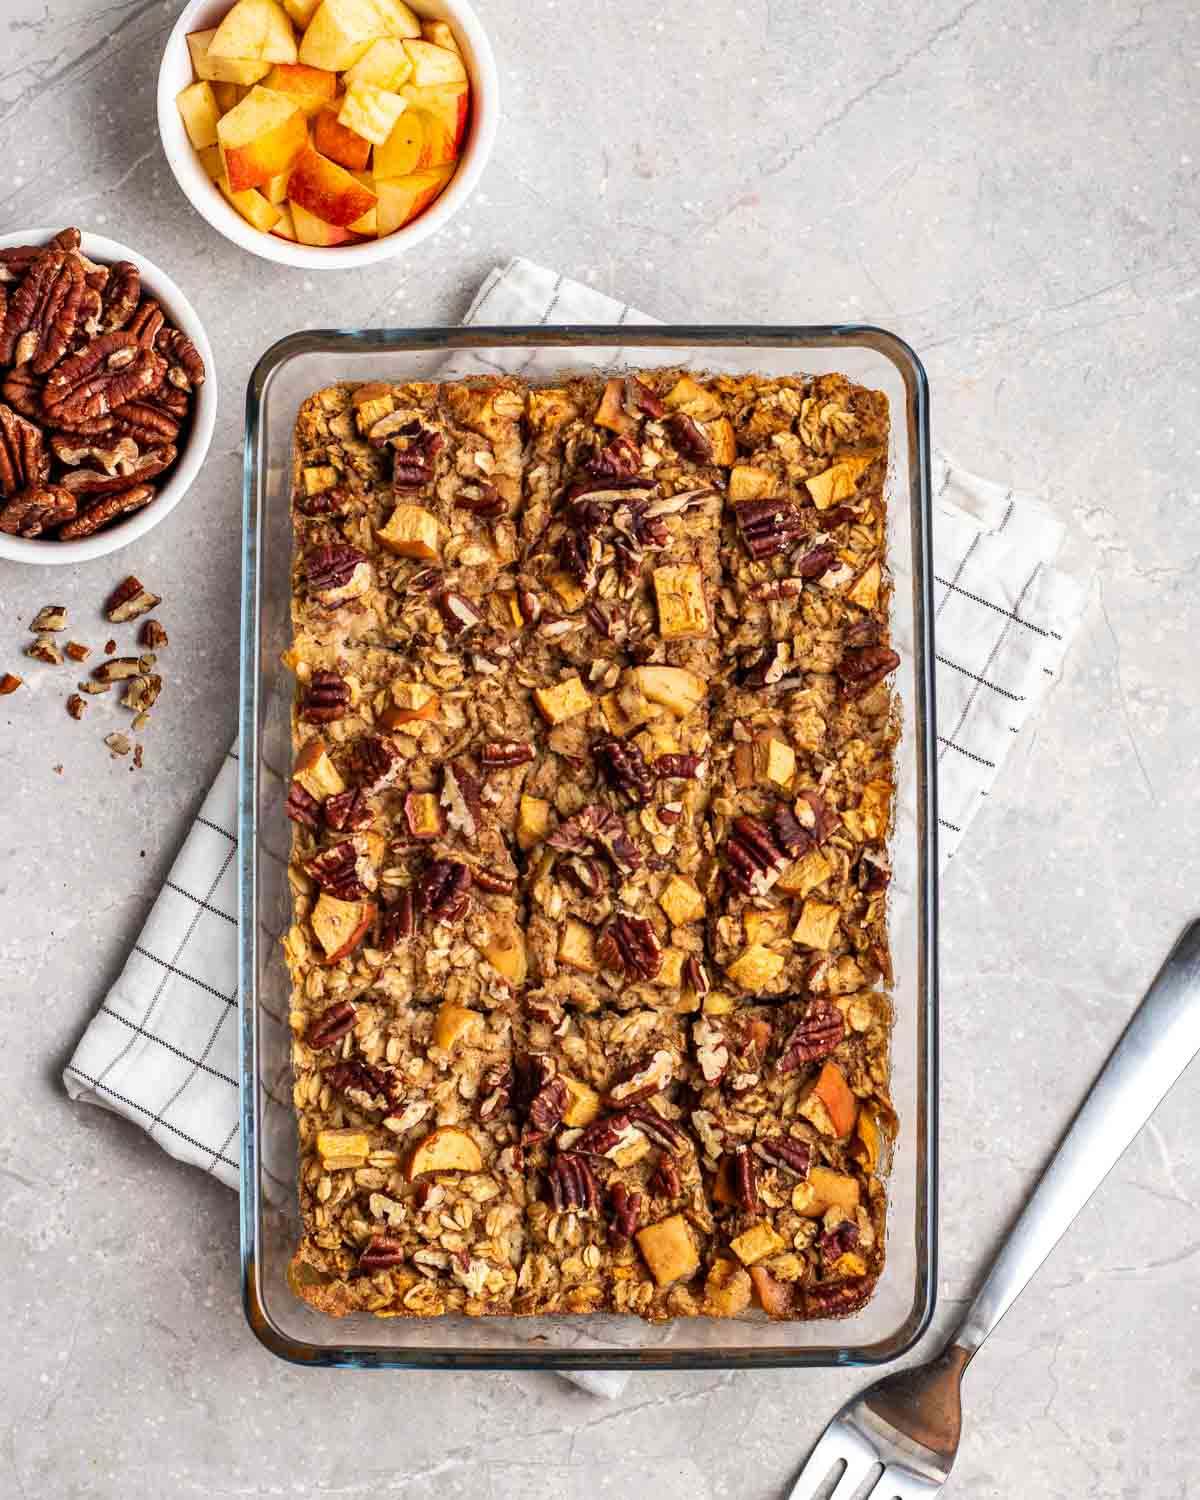 Apple baked oatmeal in a glass dish with chopped apples, pecans and a fork beside.